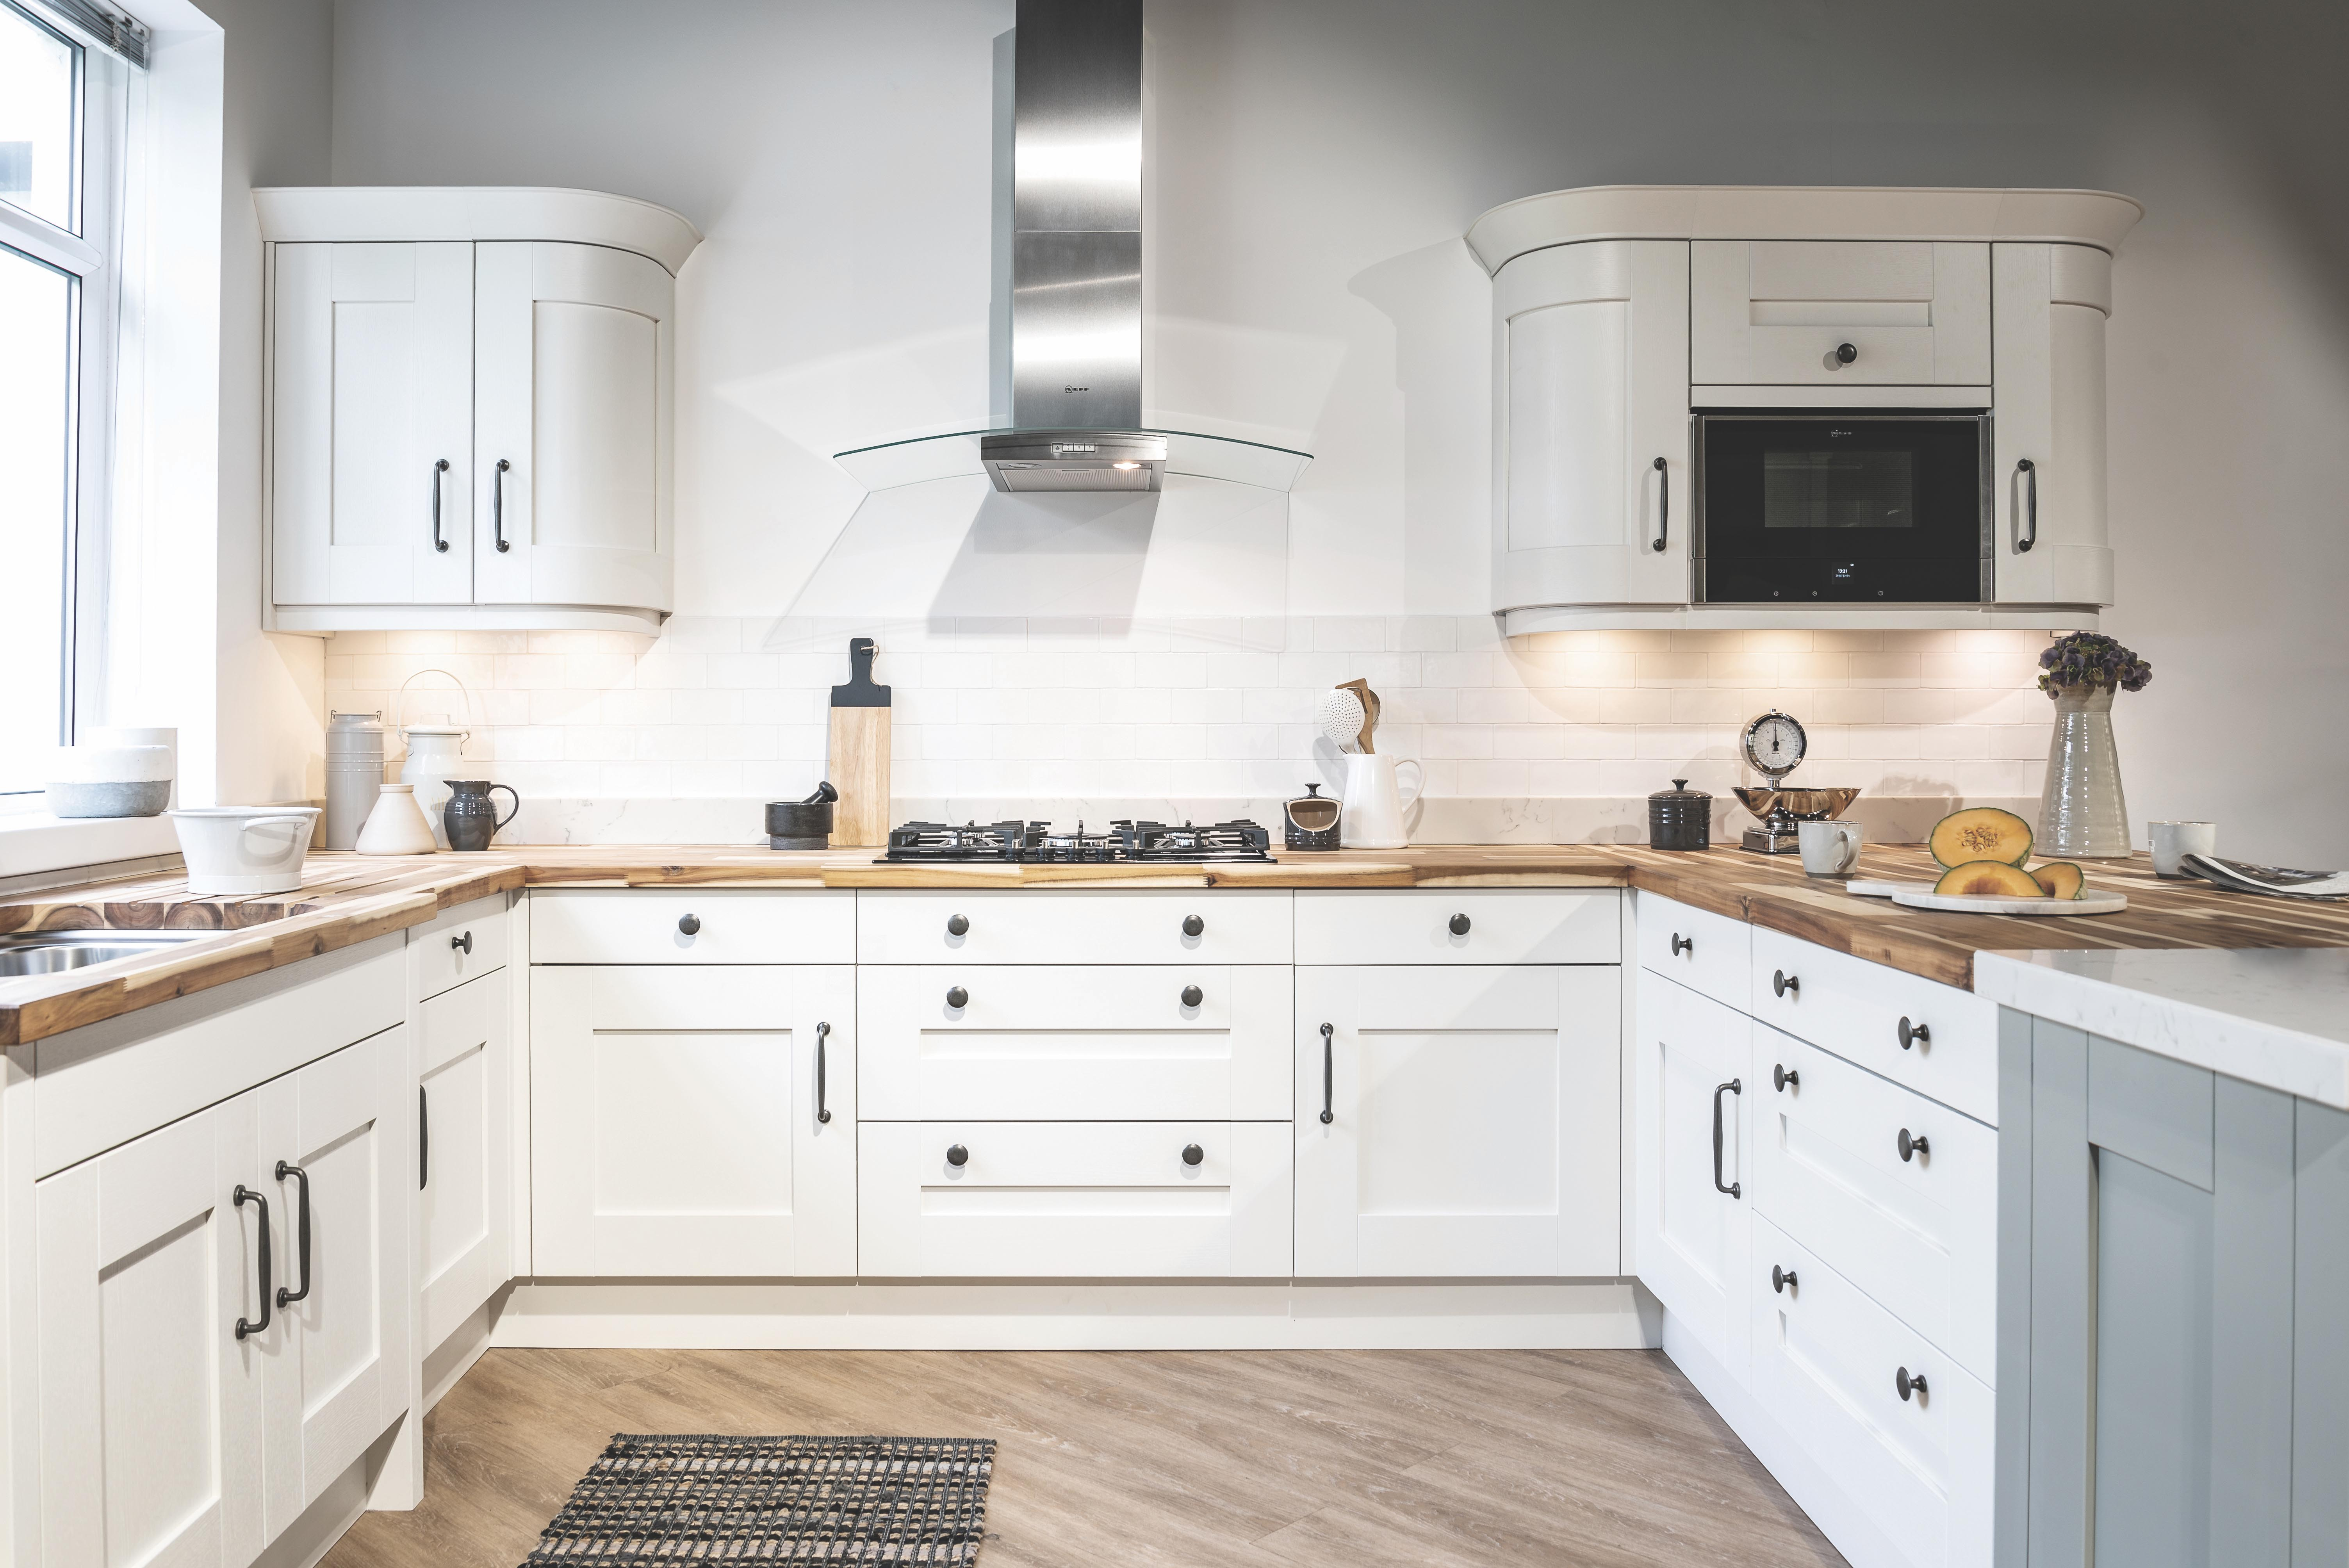 The Process Behind Your New Dream Kitchen – From Survey to Installation